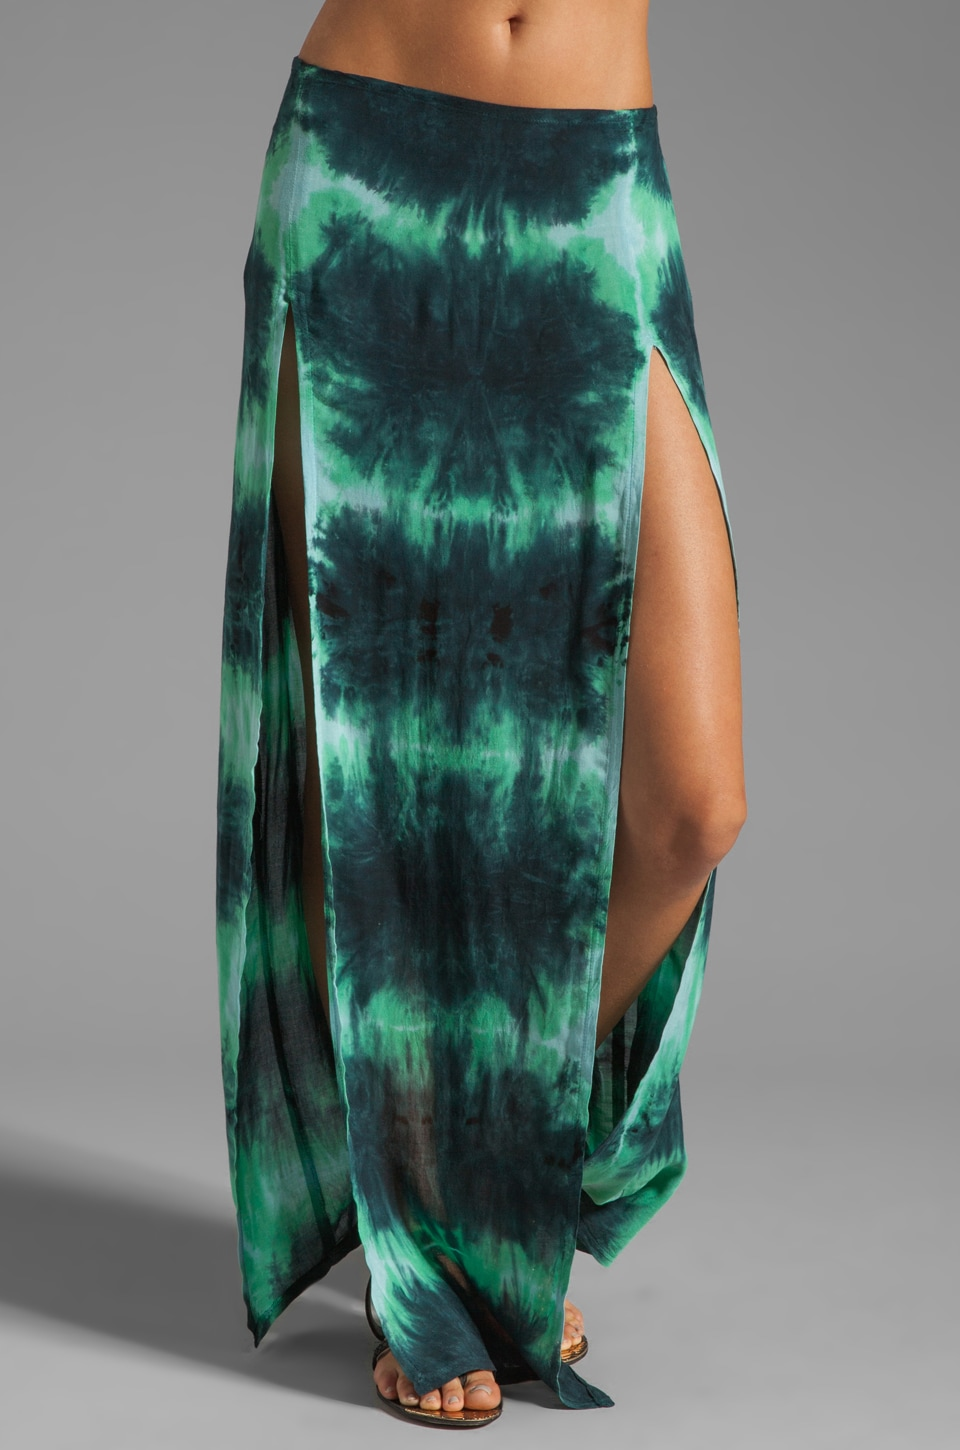 Blu Moon Two Slit Skirt en Aqua Tie Dye